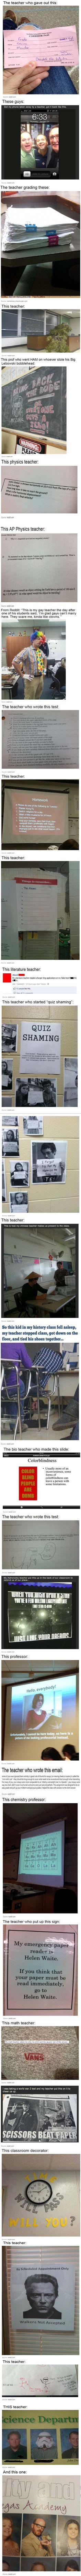 Hilarious! I would become a teacher just to do things like this. :)